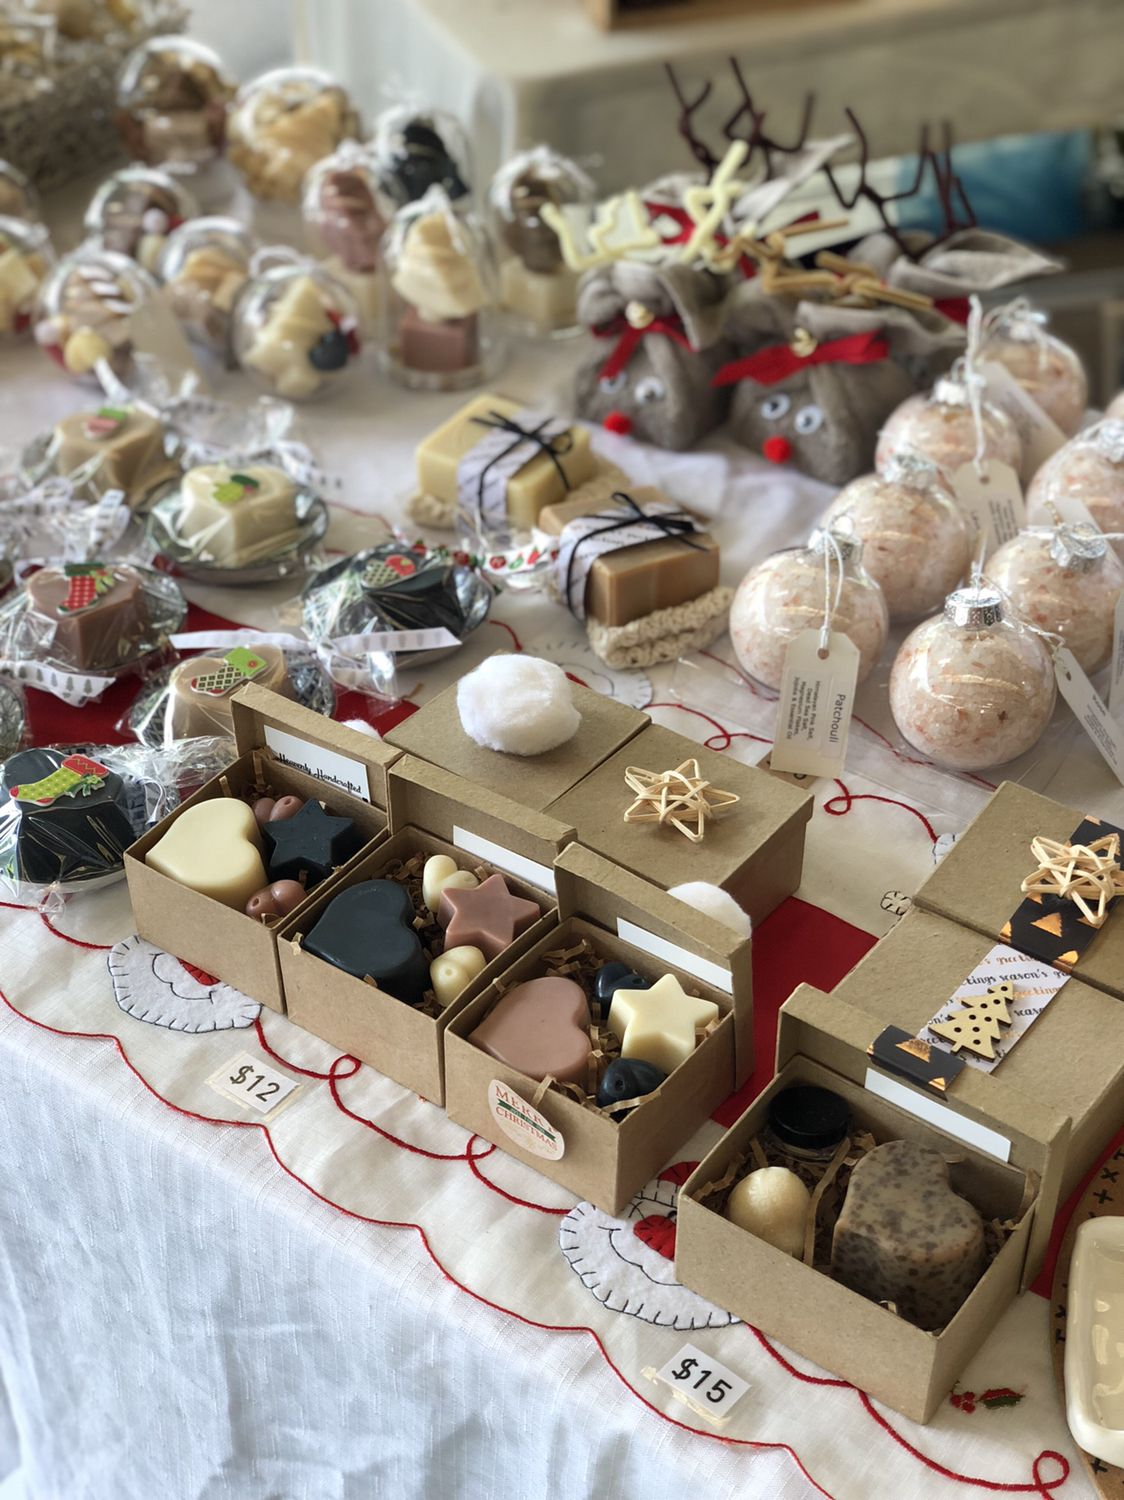 Variety of Christmas packaging and gifts made with natural